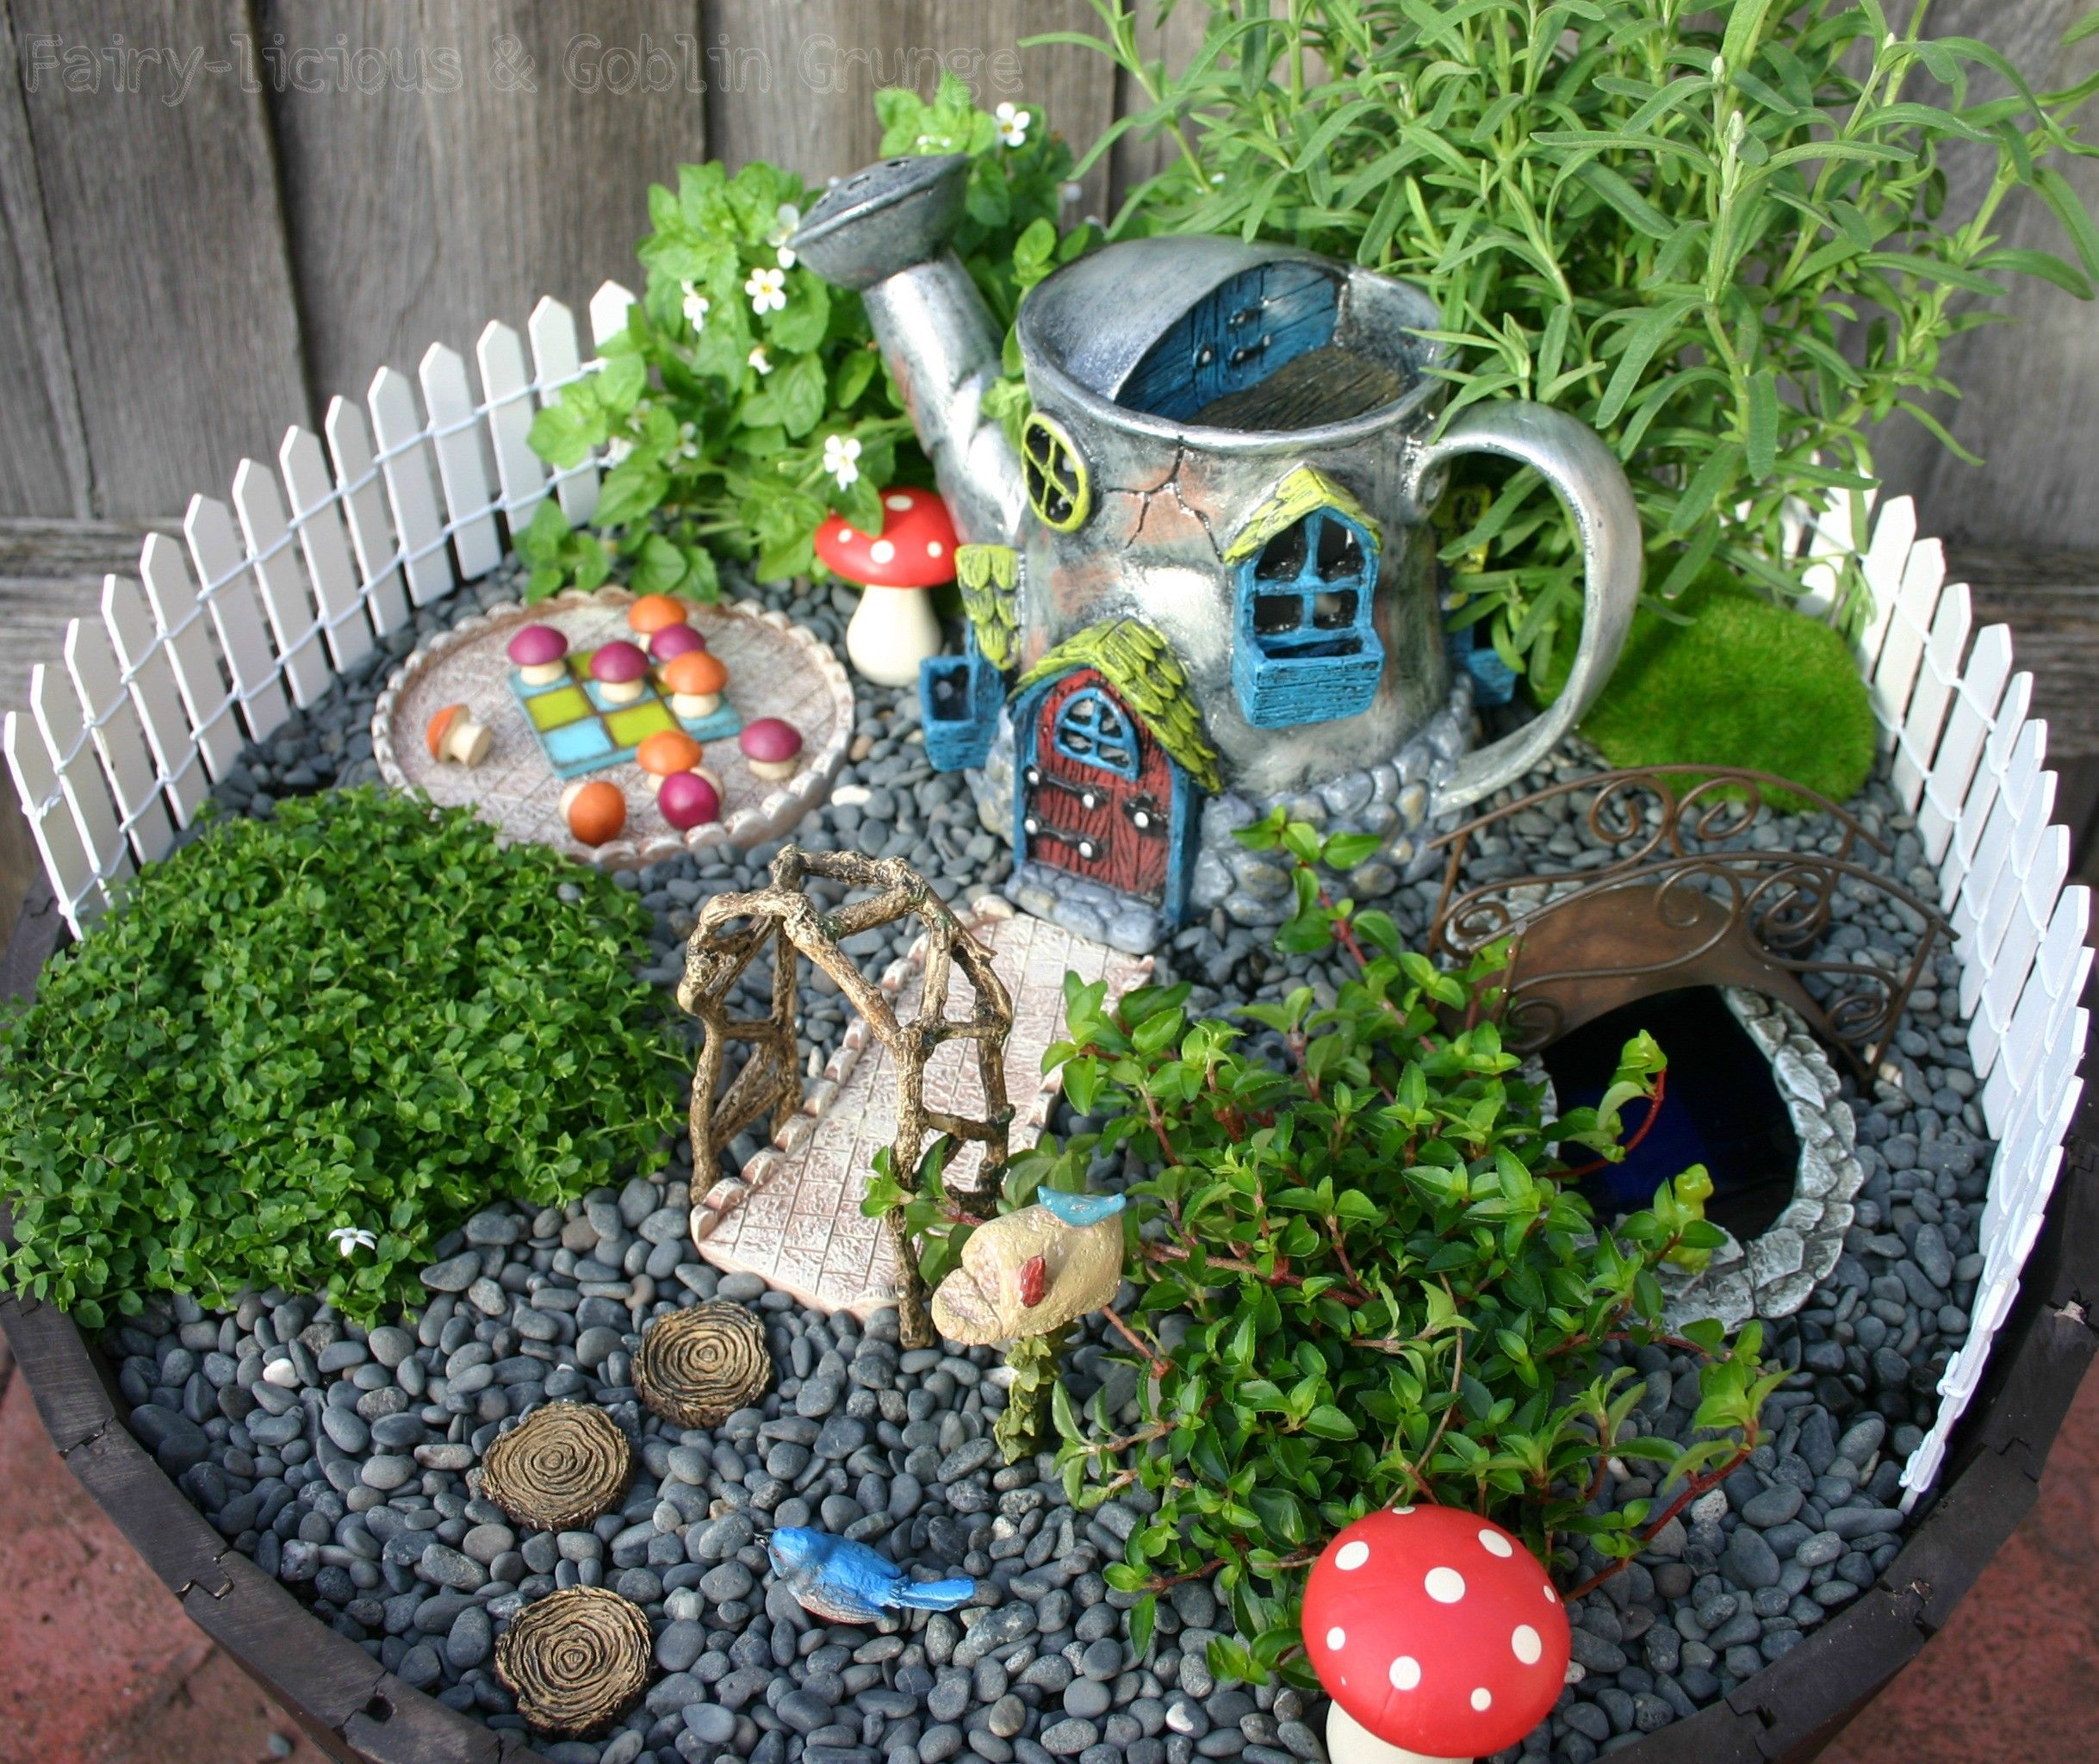 Garden Design : 50+ Exotic Fairy Garden Ideas | Pinterest | Fairy ...